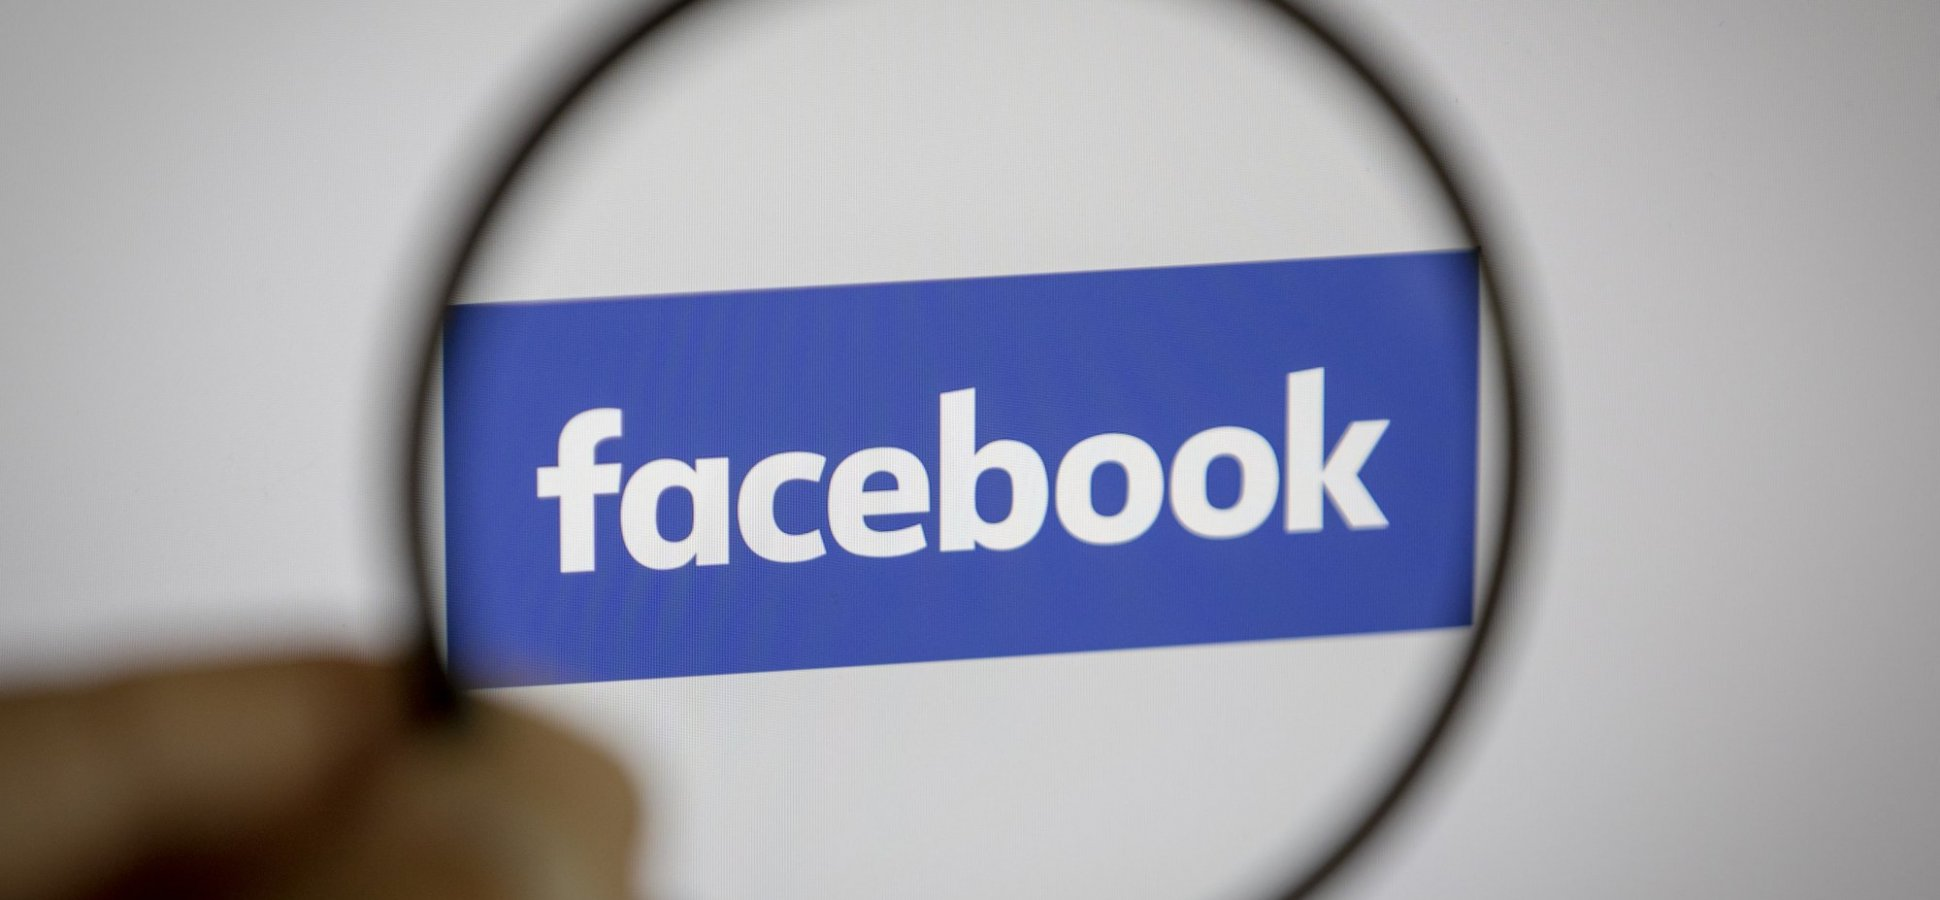 Here's the Highly Controversial Thing Facebook Announced on the Wednesday Before Thanksgiving (We Weren't Supposed to Notice or Remember, Right?) | Inc.com